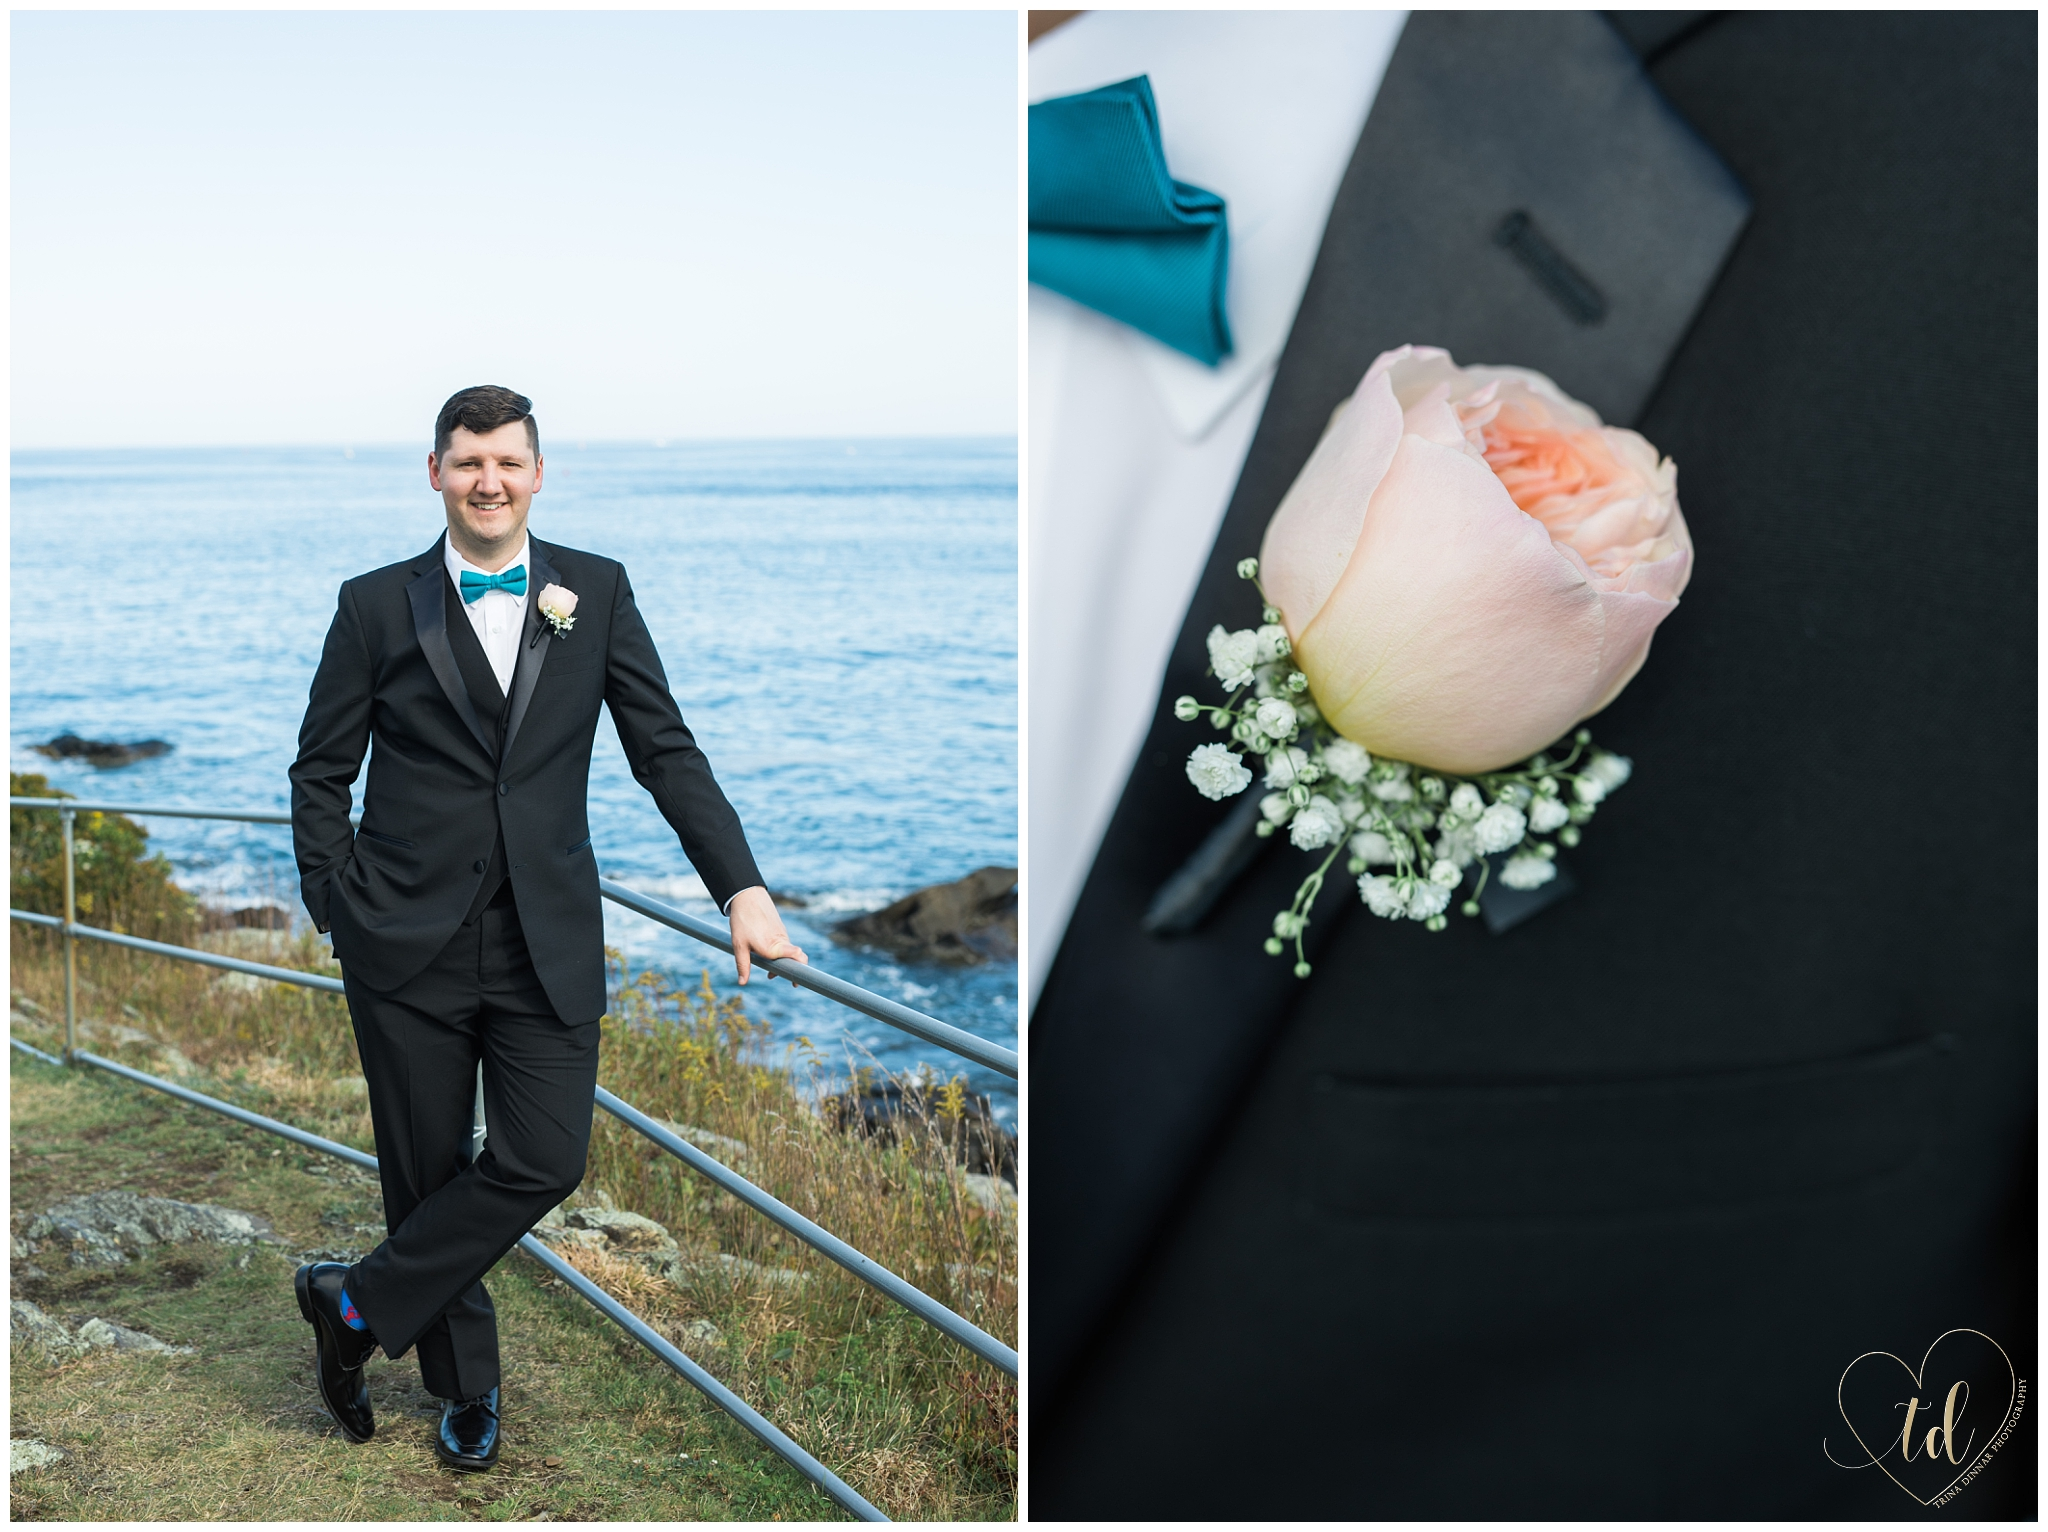 Maine Groom, Owen, shows off his suit, tie and boutonniere